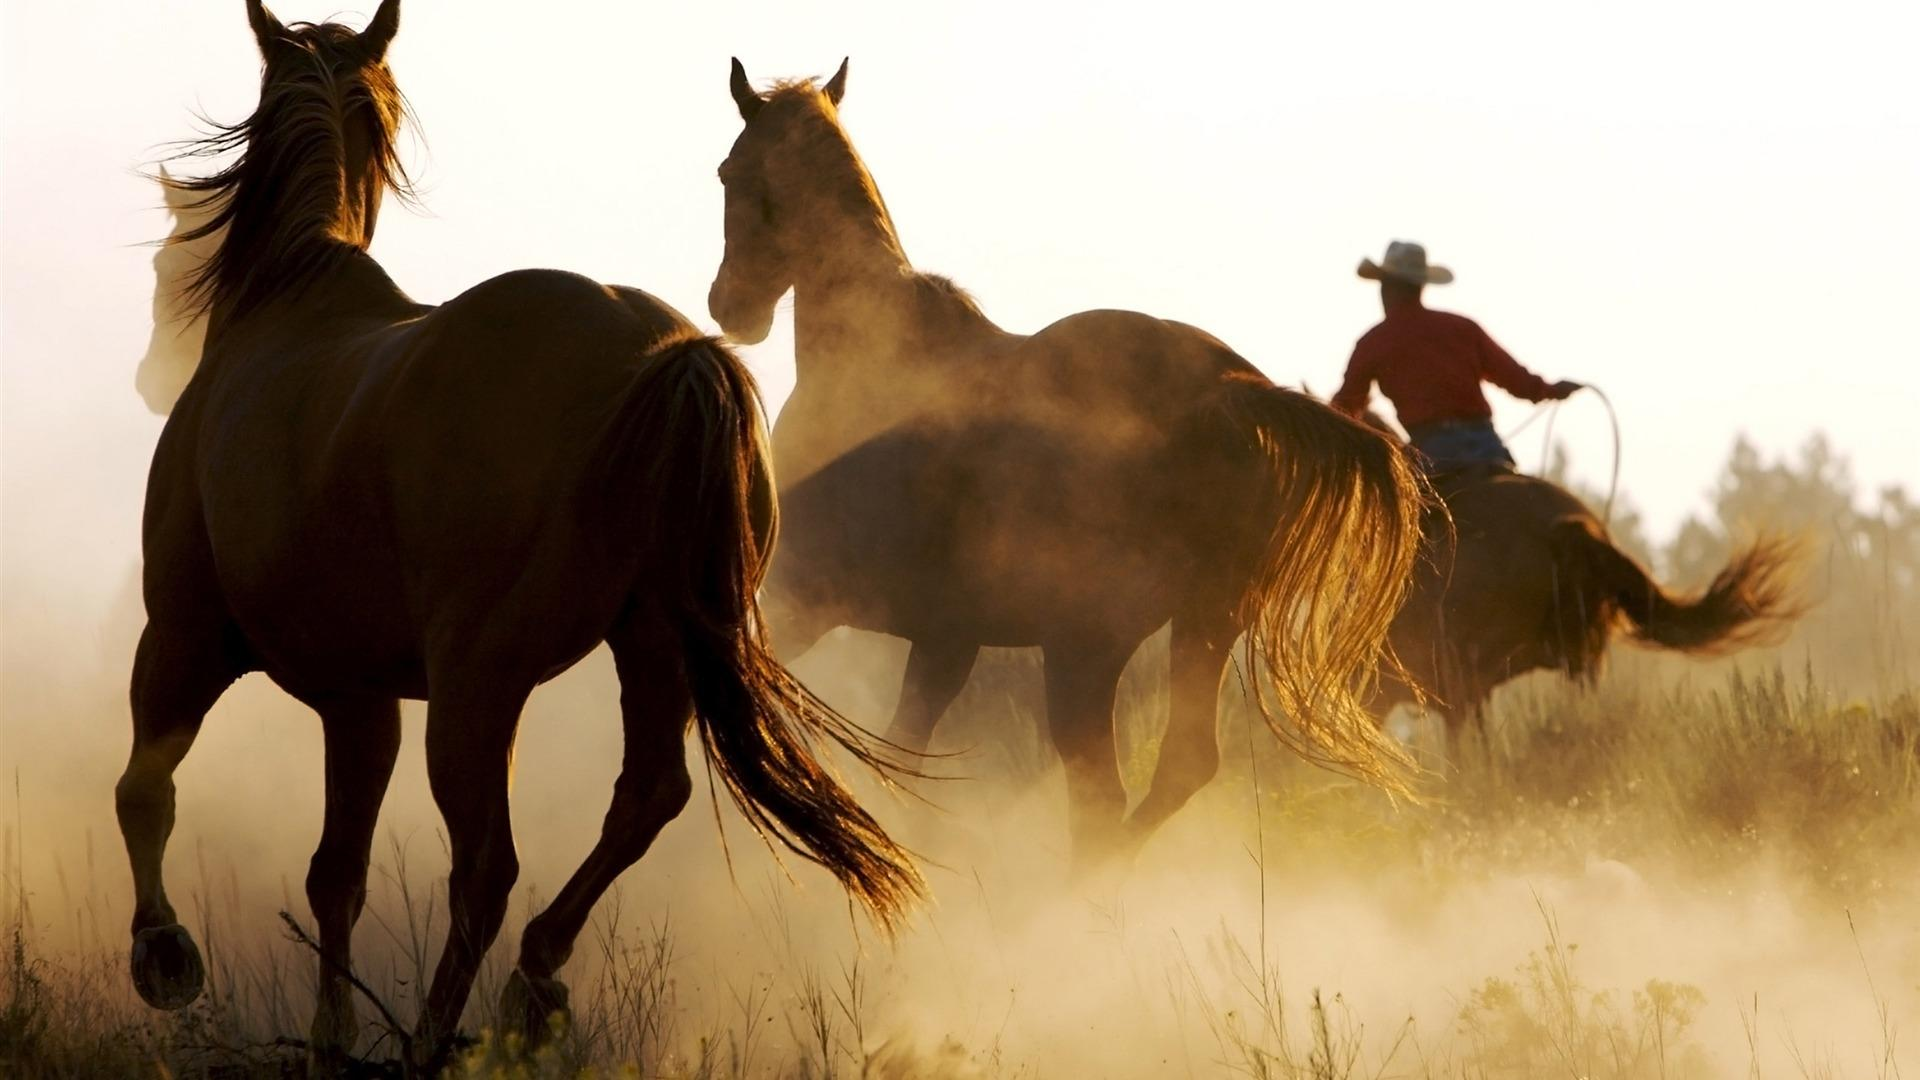 Hot-Rodeo-Cowboys-Horse-desktop-from-Arabian-to-wild-Mustangs-all-in-HD-wallpaper-wp3806642